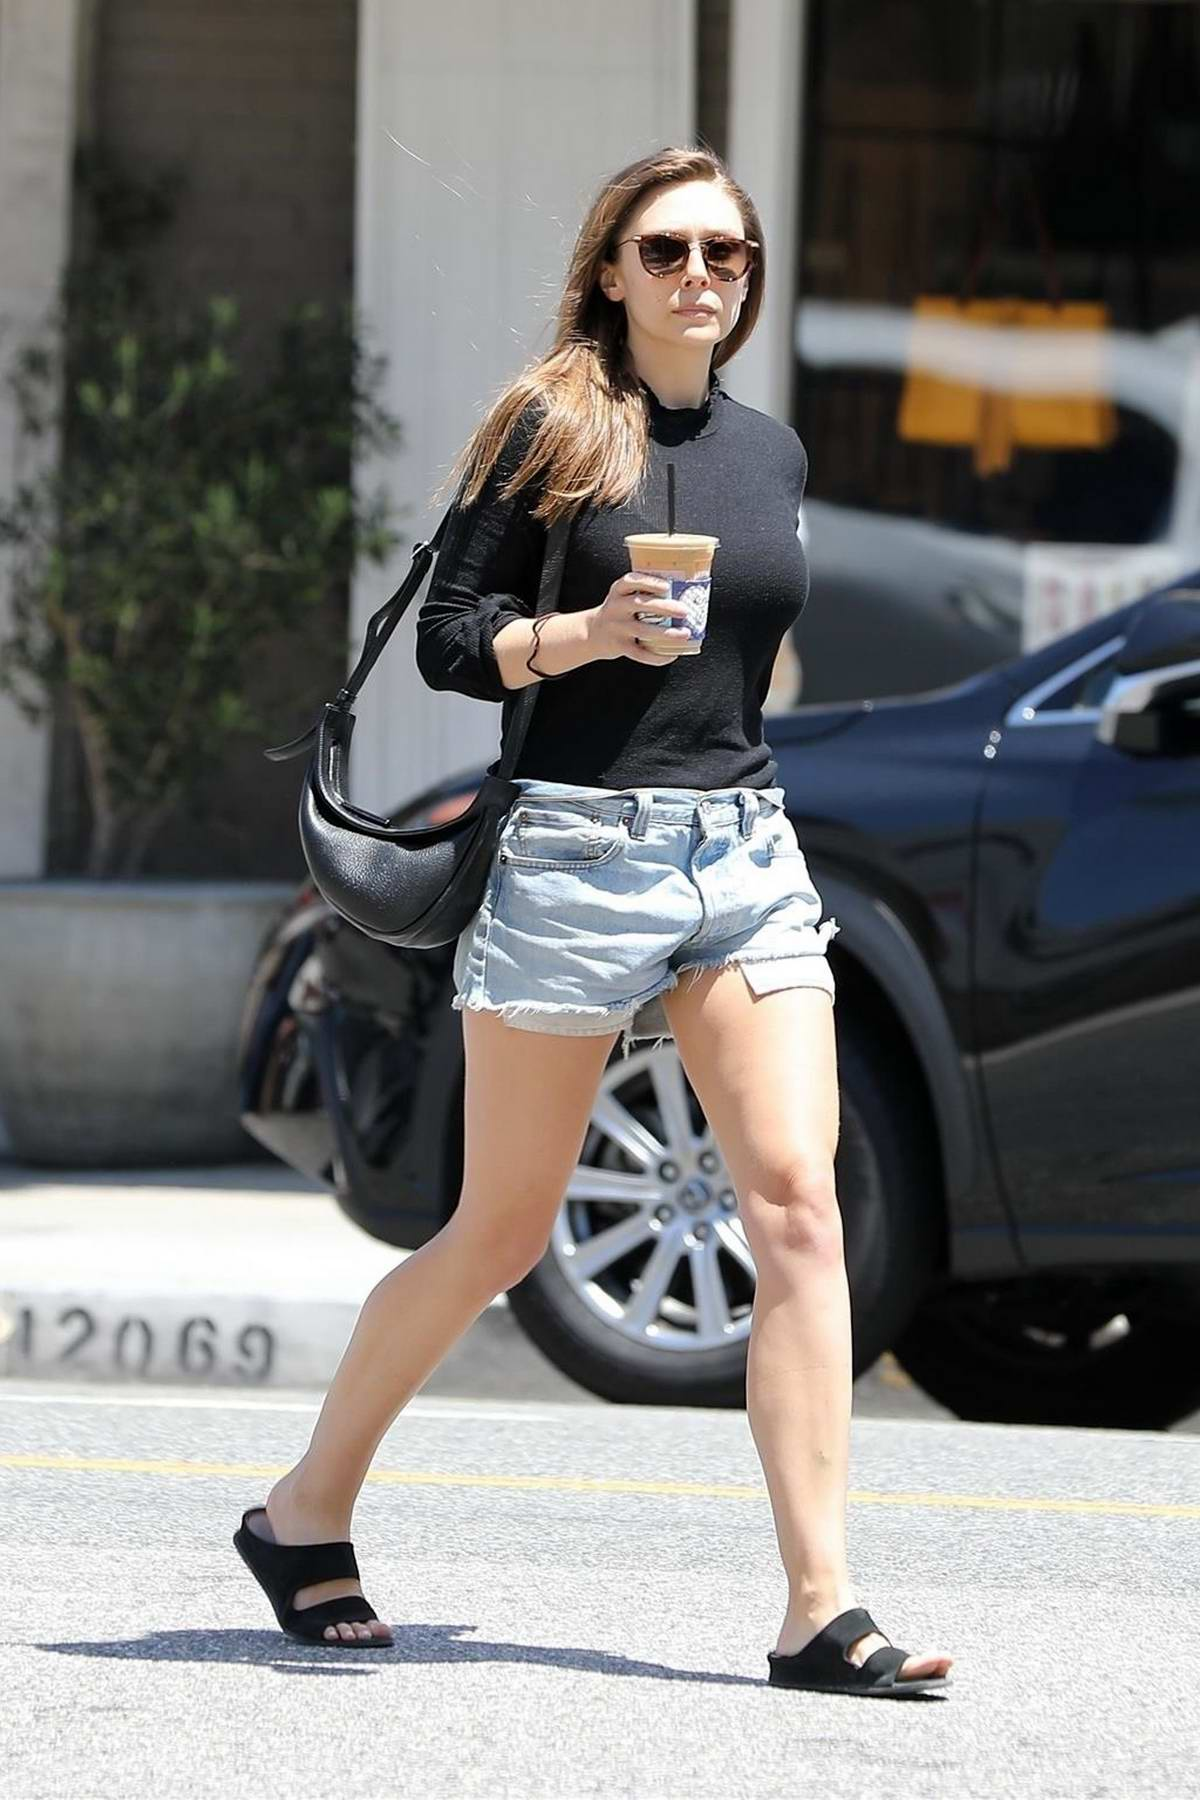 Elizabeth Olsen rocks a black top and denim shorts while out for an iced coffee at Alfred's in West Hollywood, Los Angeles